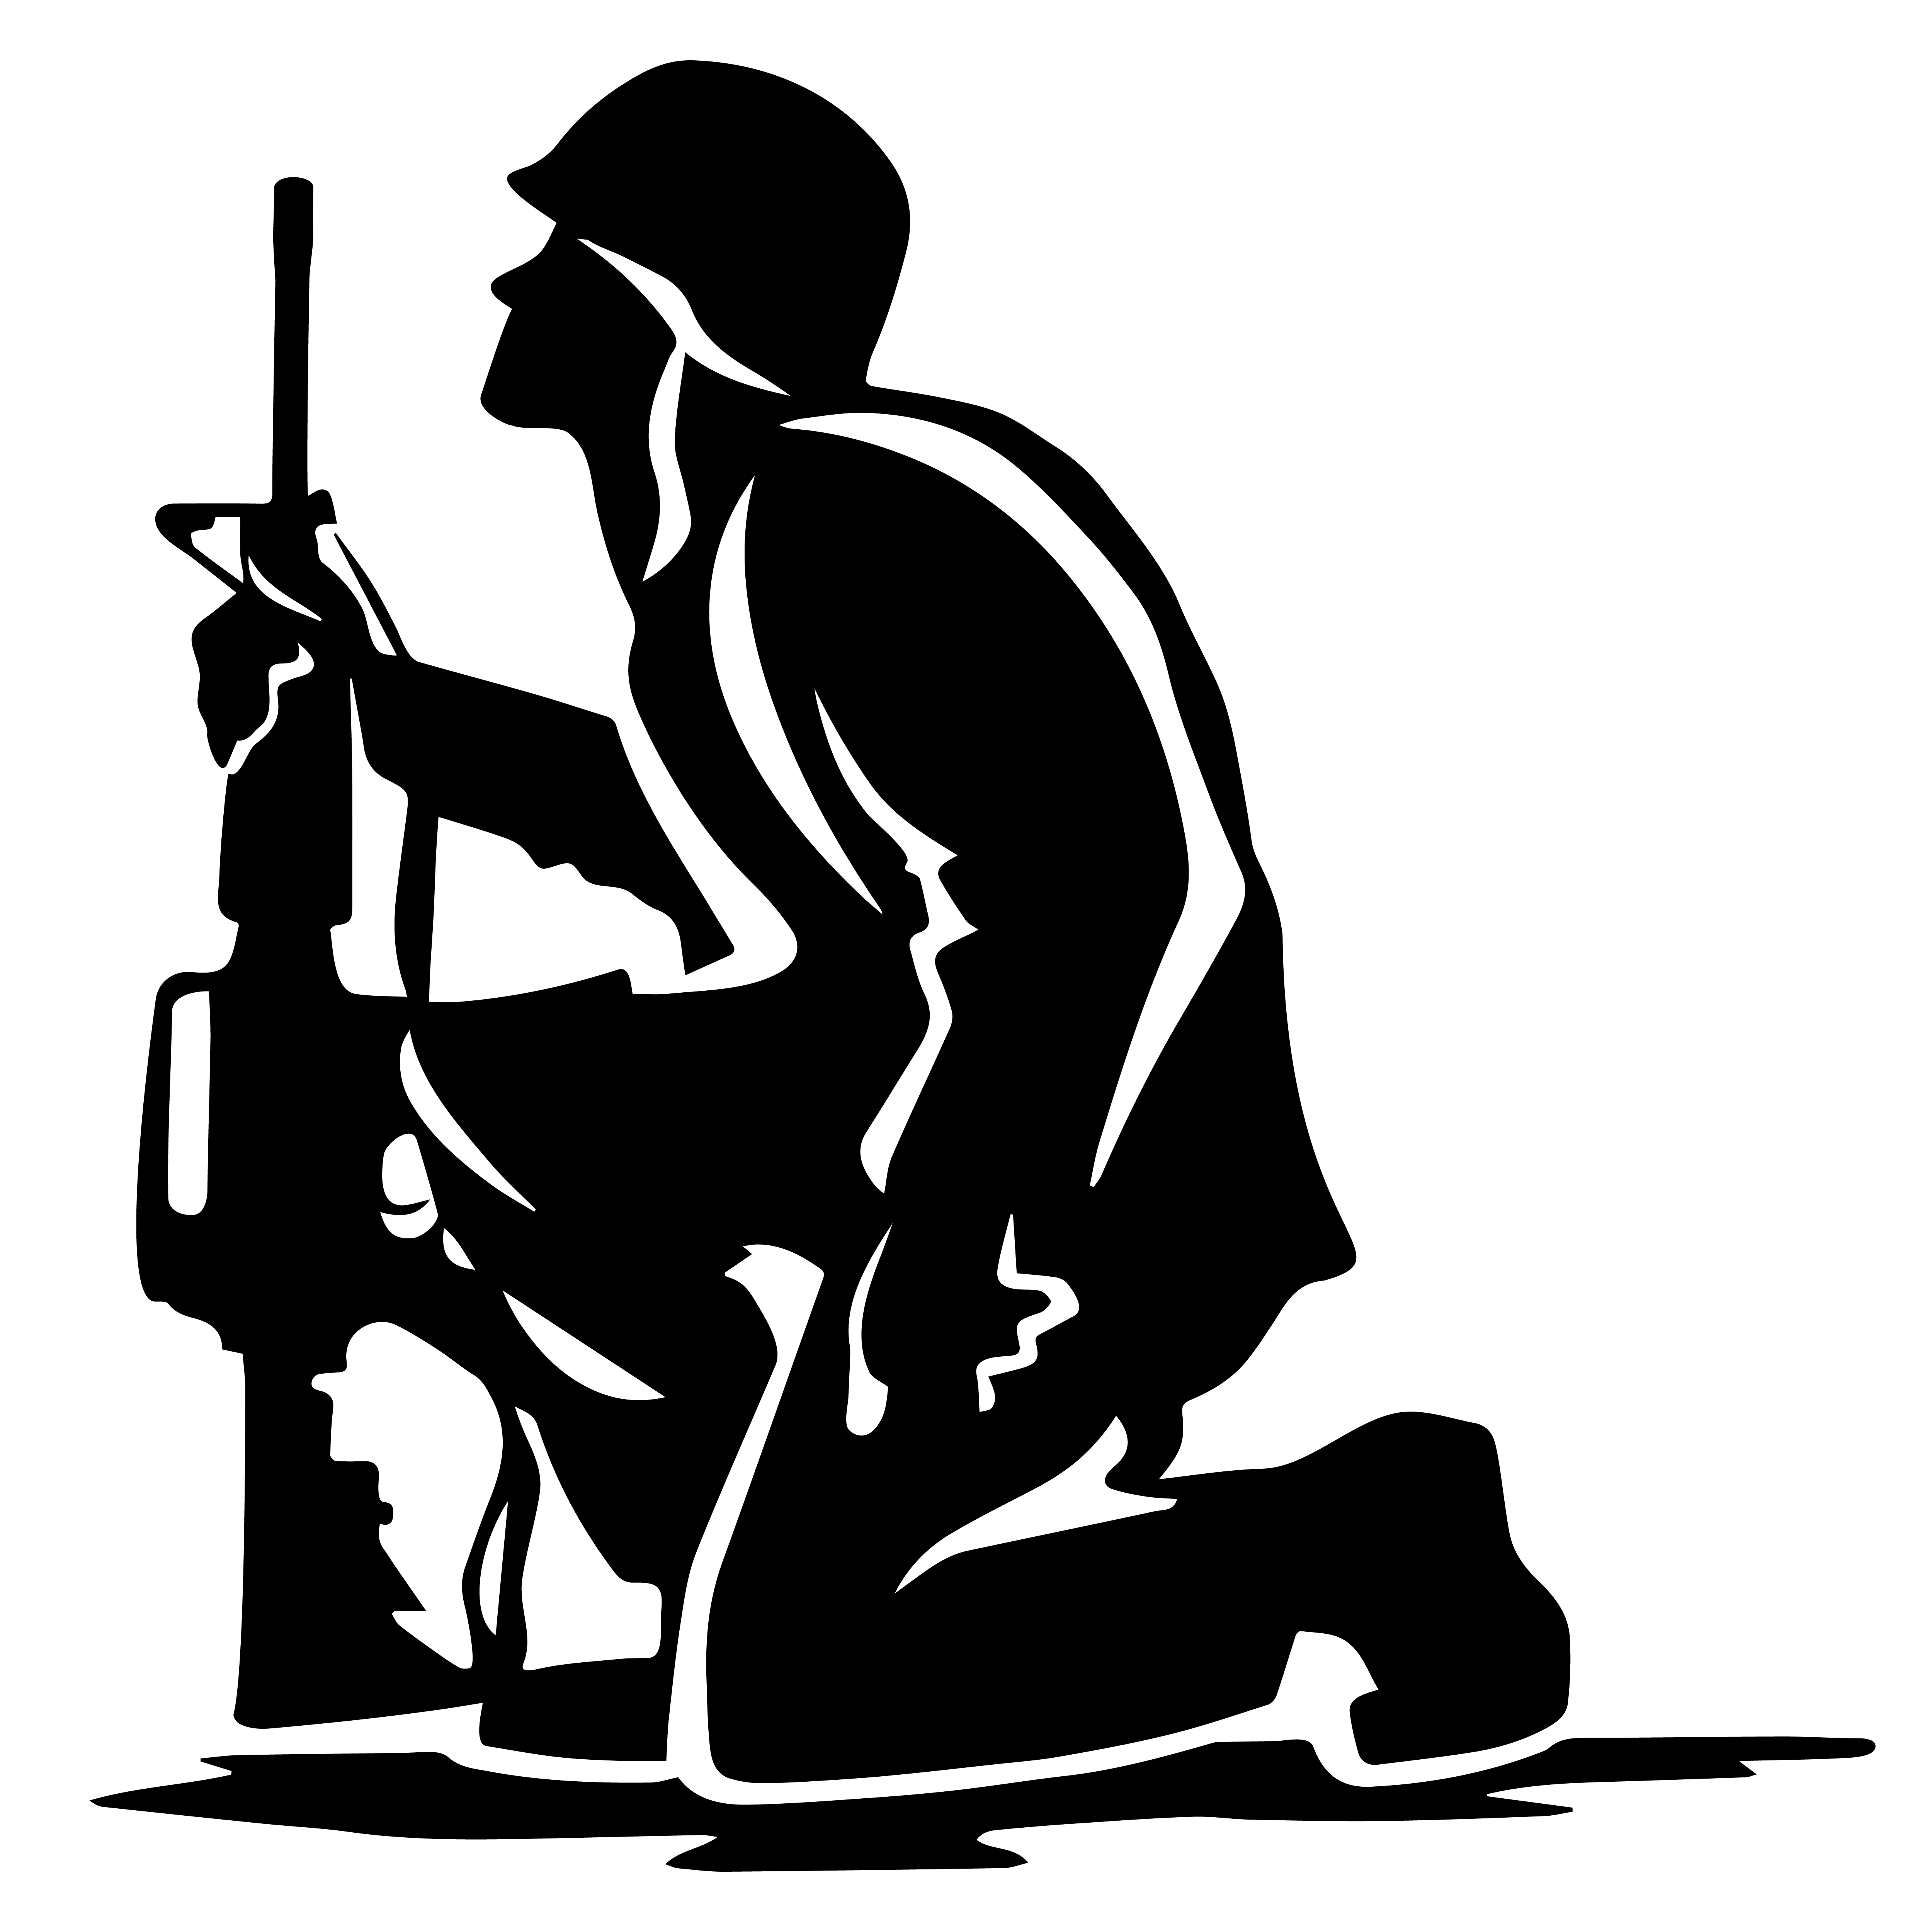 silhouette of soldier popular images american revolution soldier silhouette silhouette soldier of